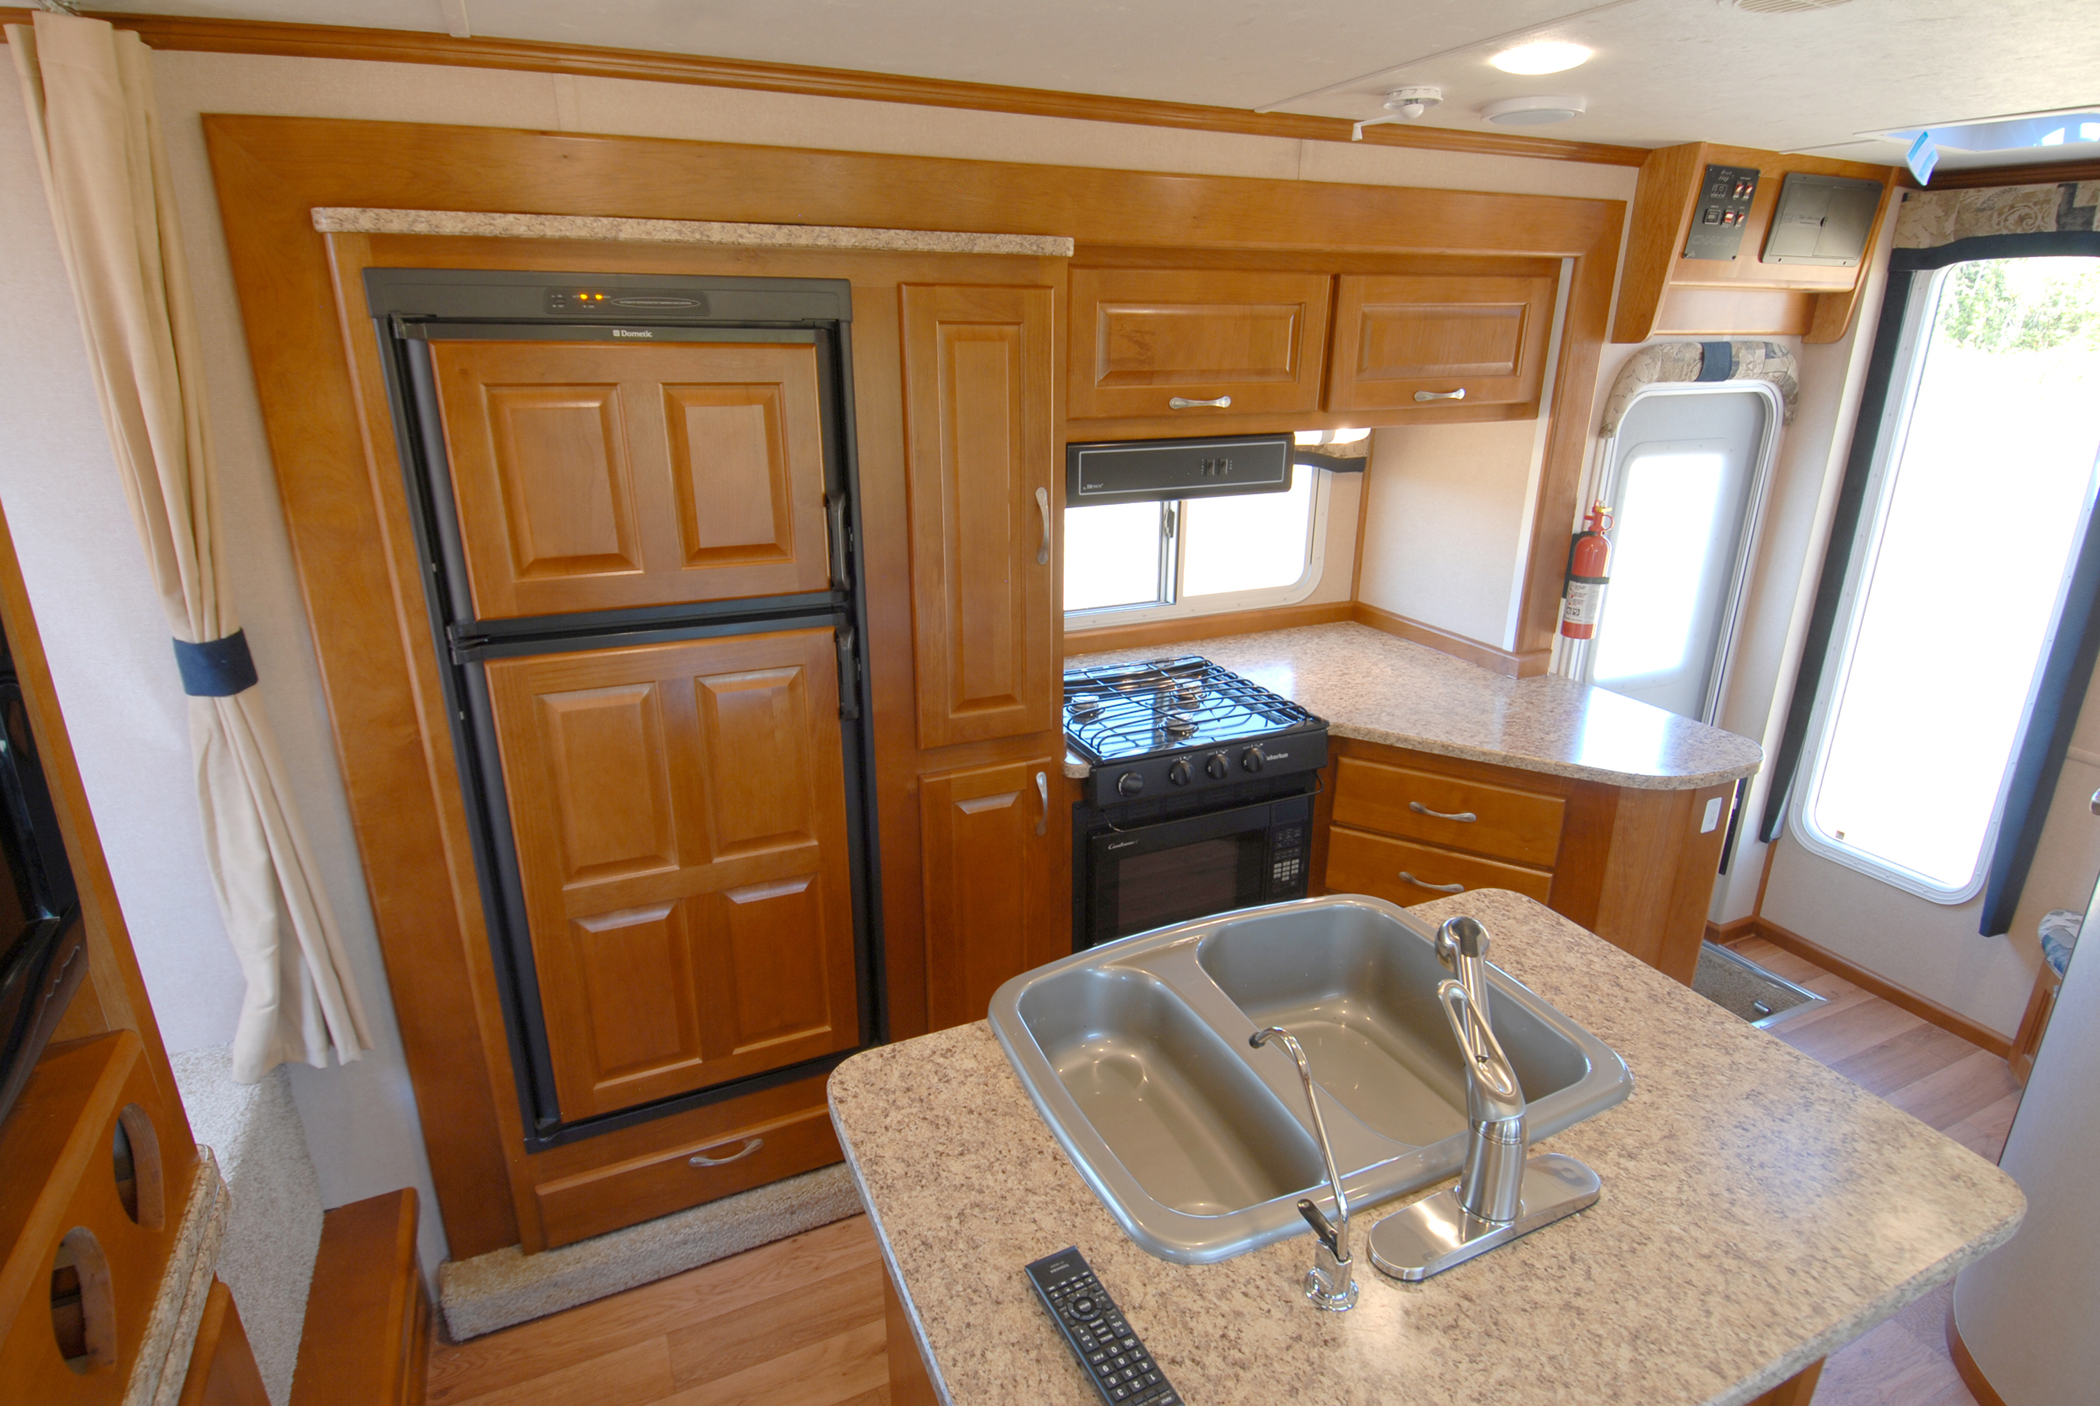 Home away from home rv camper with island kitchen for Home away from home cabins